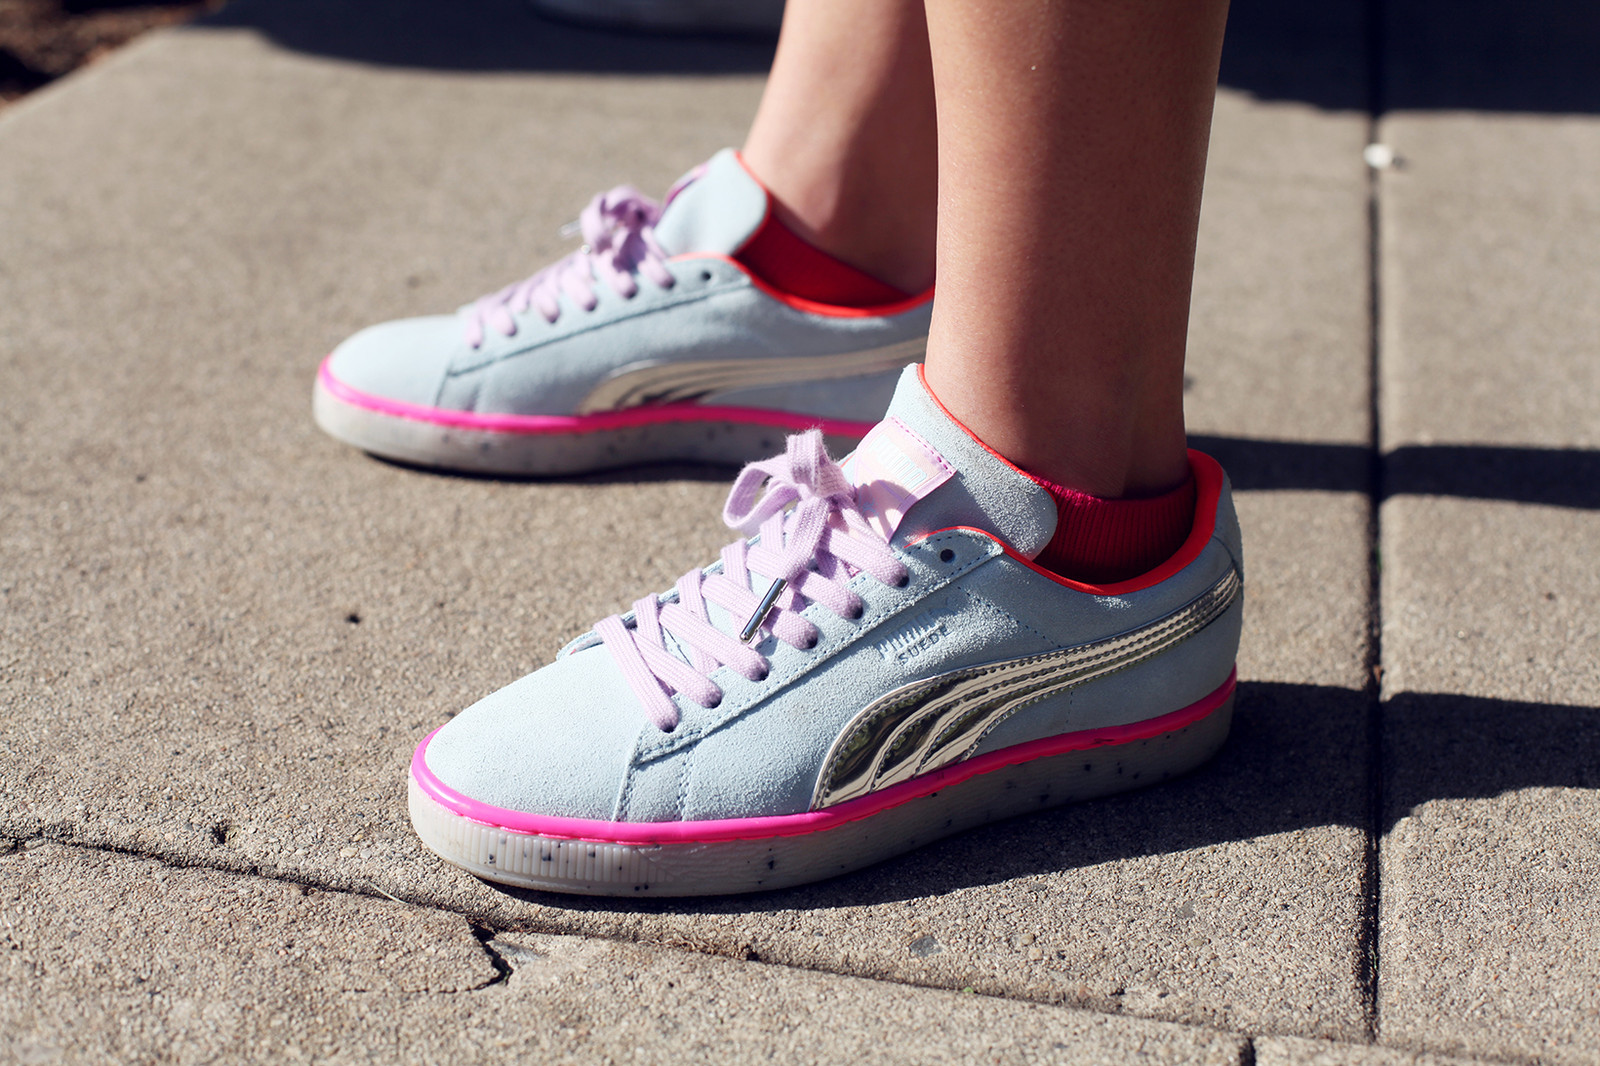 PUMA sophia webster spring summer 2018 ss18 princess puma glitter suede basket platform muse echo sneakers iridescent glittery sparkle womens apparel tutu collection collaboration